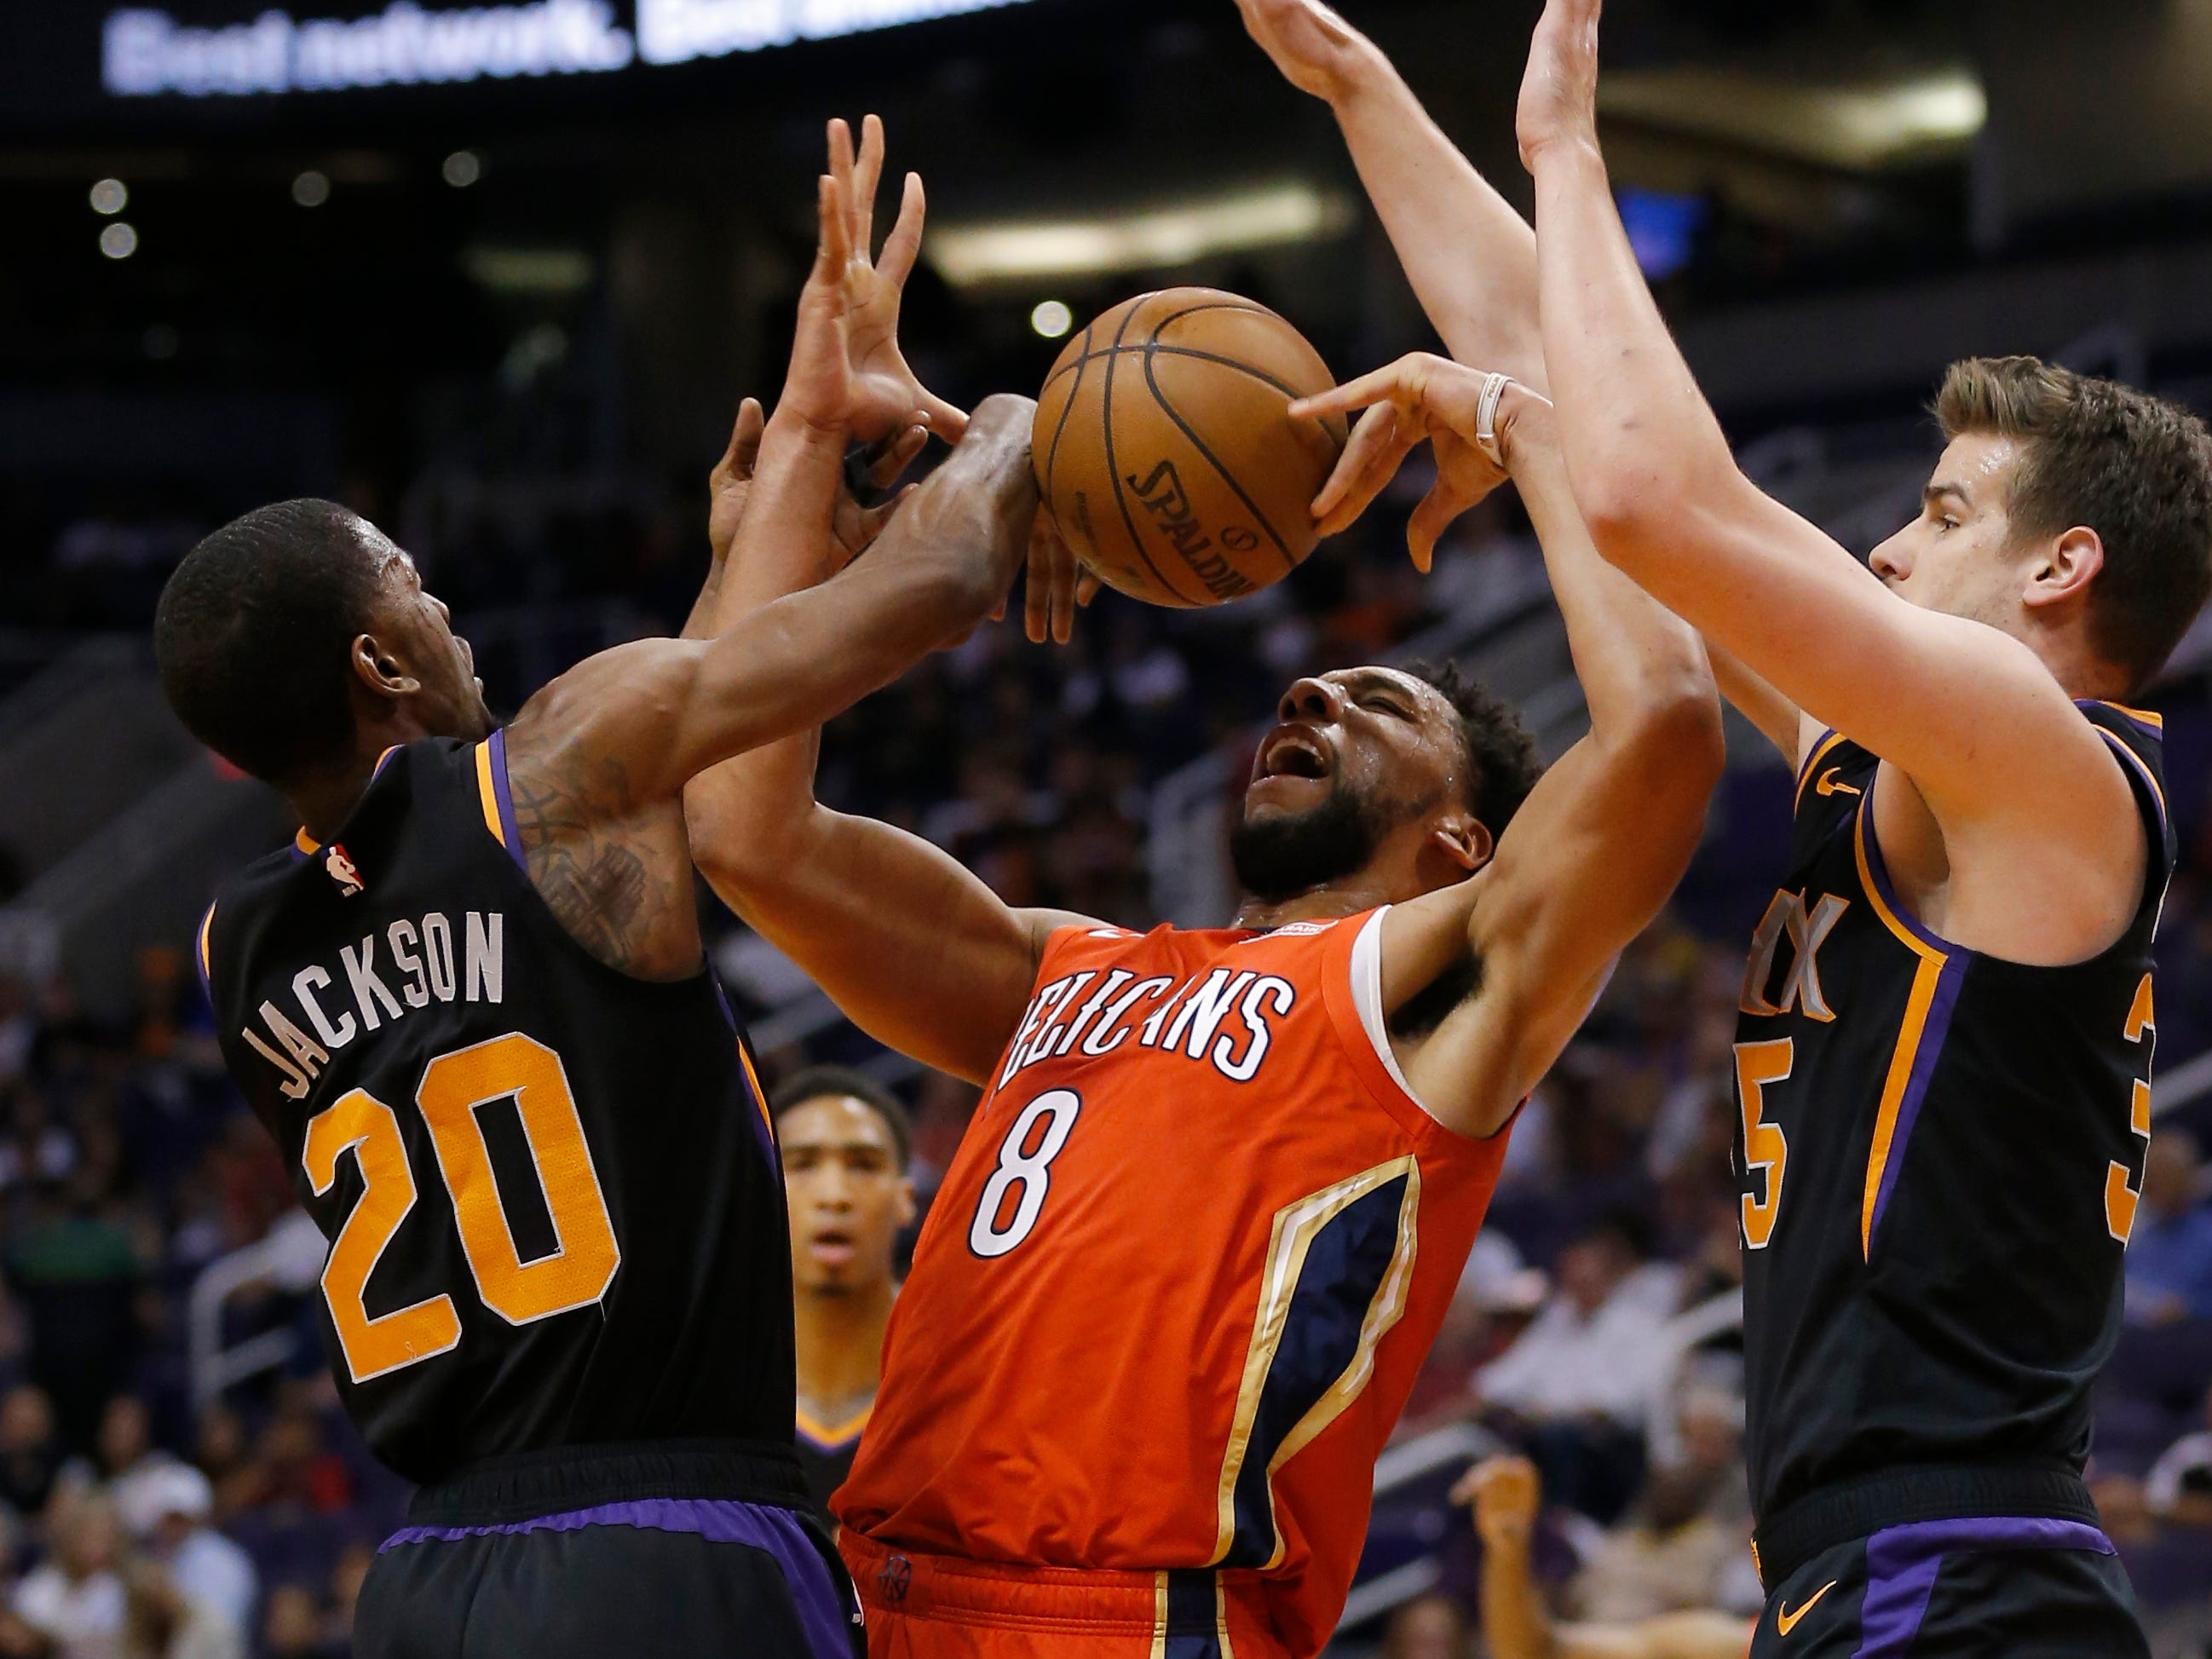 New Orleans Pelicans center Jahlil Okafor (8) battles for the loose ball with Phoenix Suns' Josh Jackson (20) and Dragan Bender during the first half of an NBA basketball game Friday, April 5, 2019, in Phoenix. (AP Photo/Rick Scuteri)